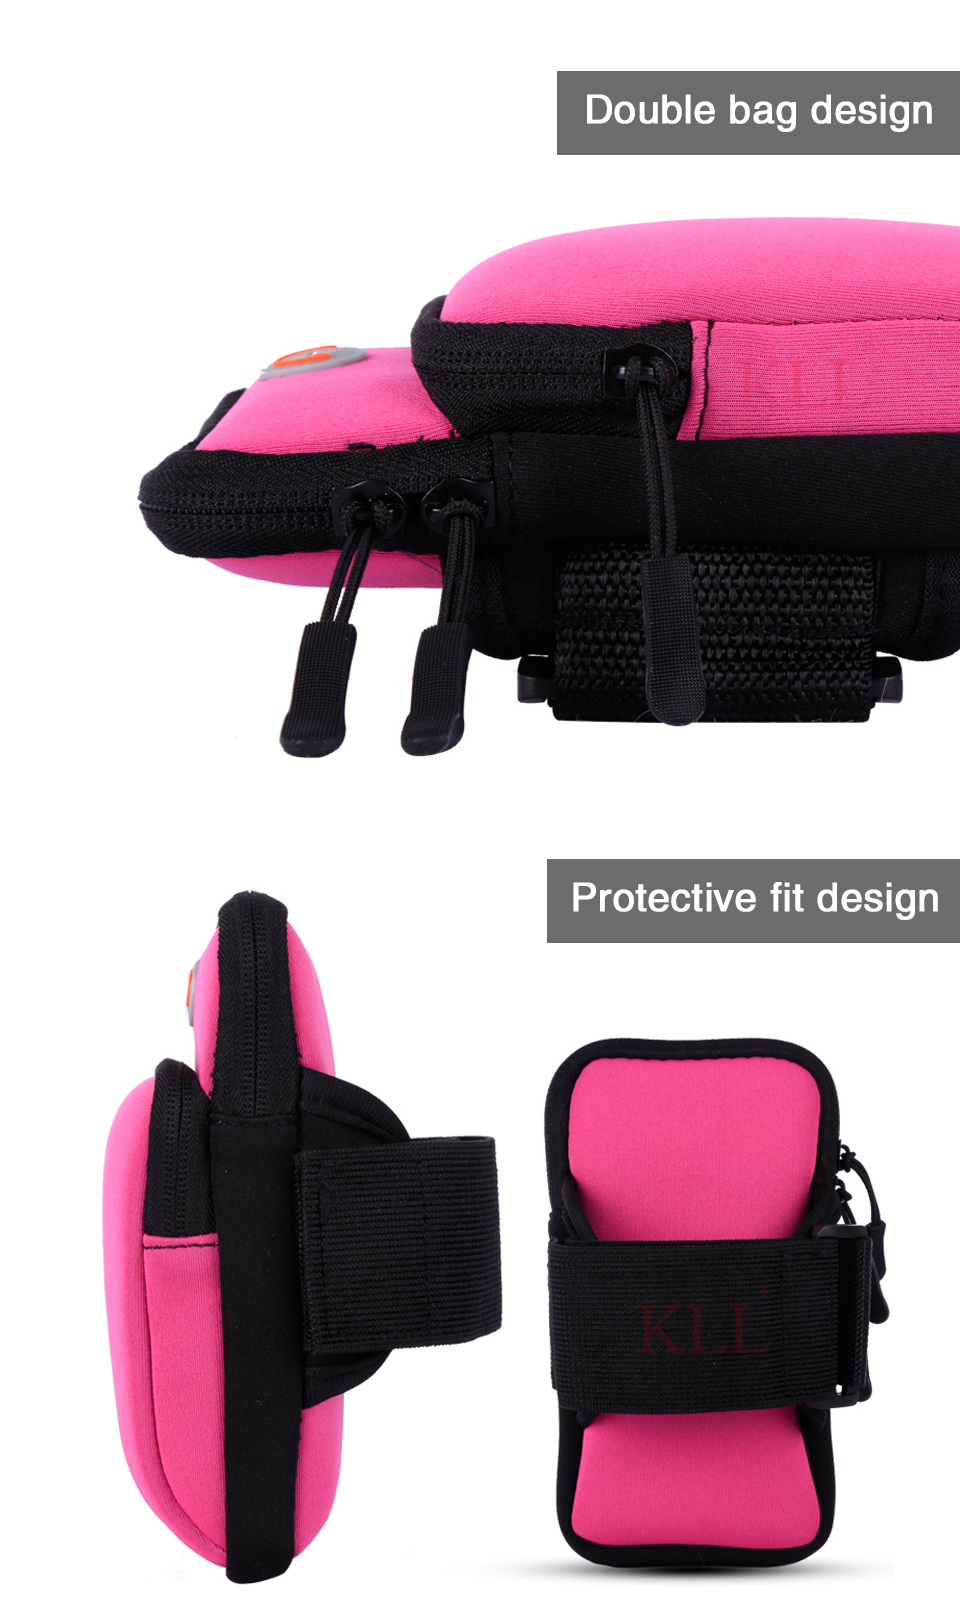 Universal 6'' Waterproof Sport Armband Bag Running Jogging Gym Arm Band Mobile Phone Bag Case Cover Holder for iPhone Samsung